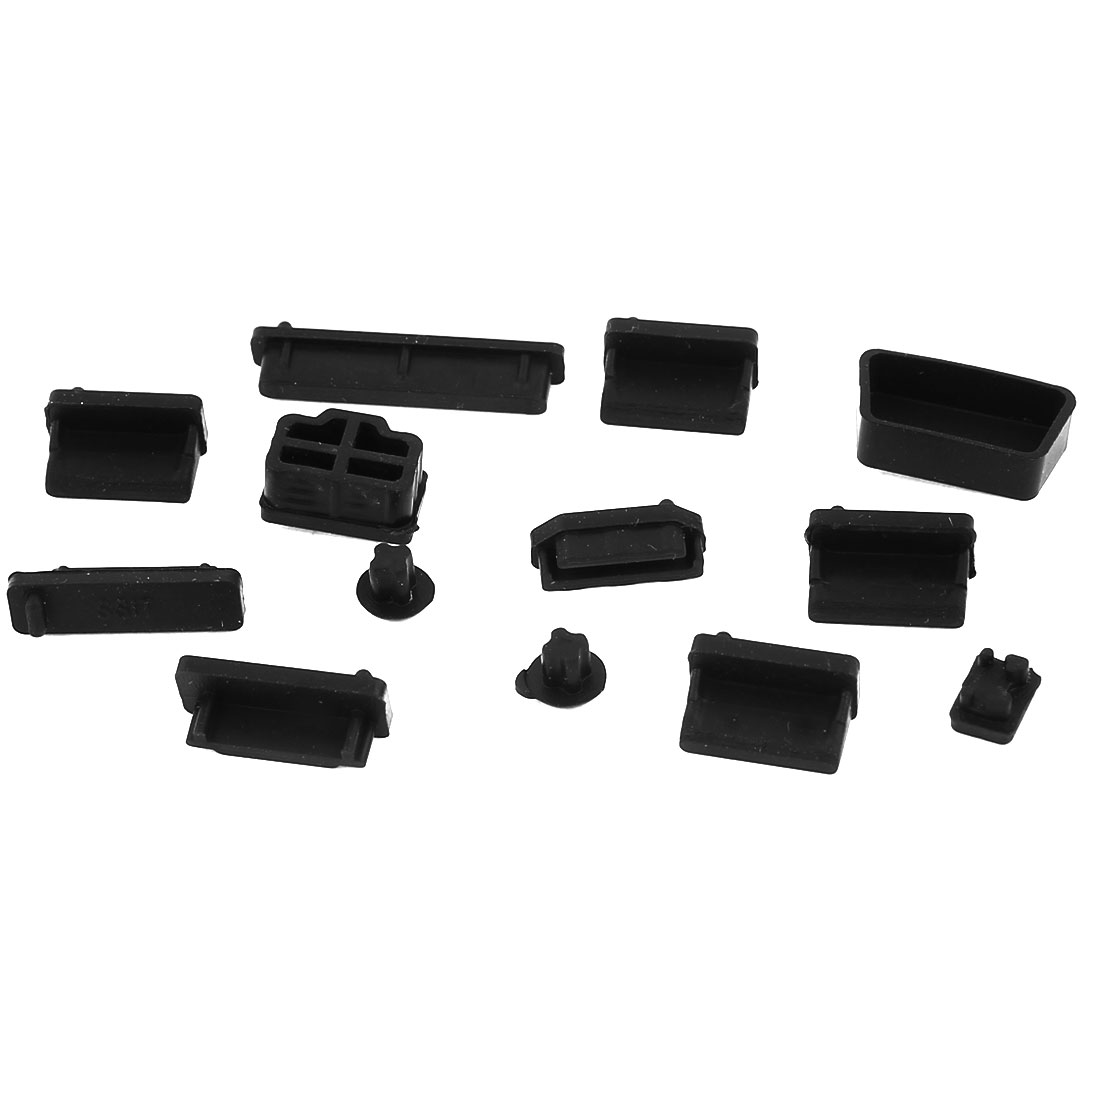 13 Pcs Protective Ports Cover Silicone Anti-Dust Connector Stopper Black for Laptop Notebook